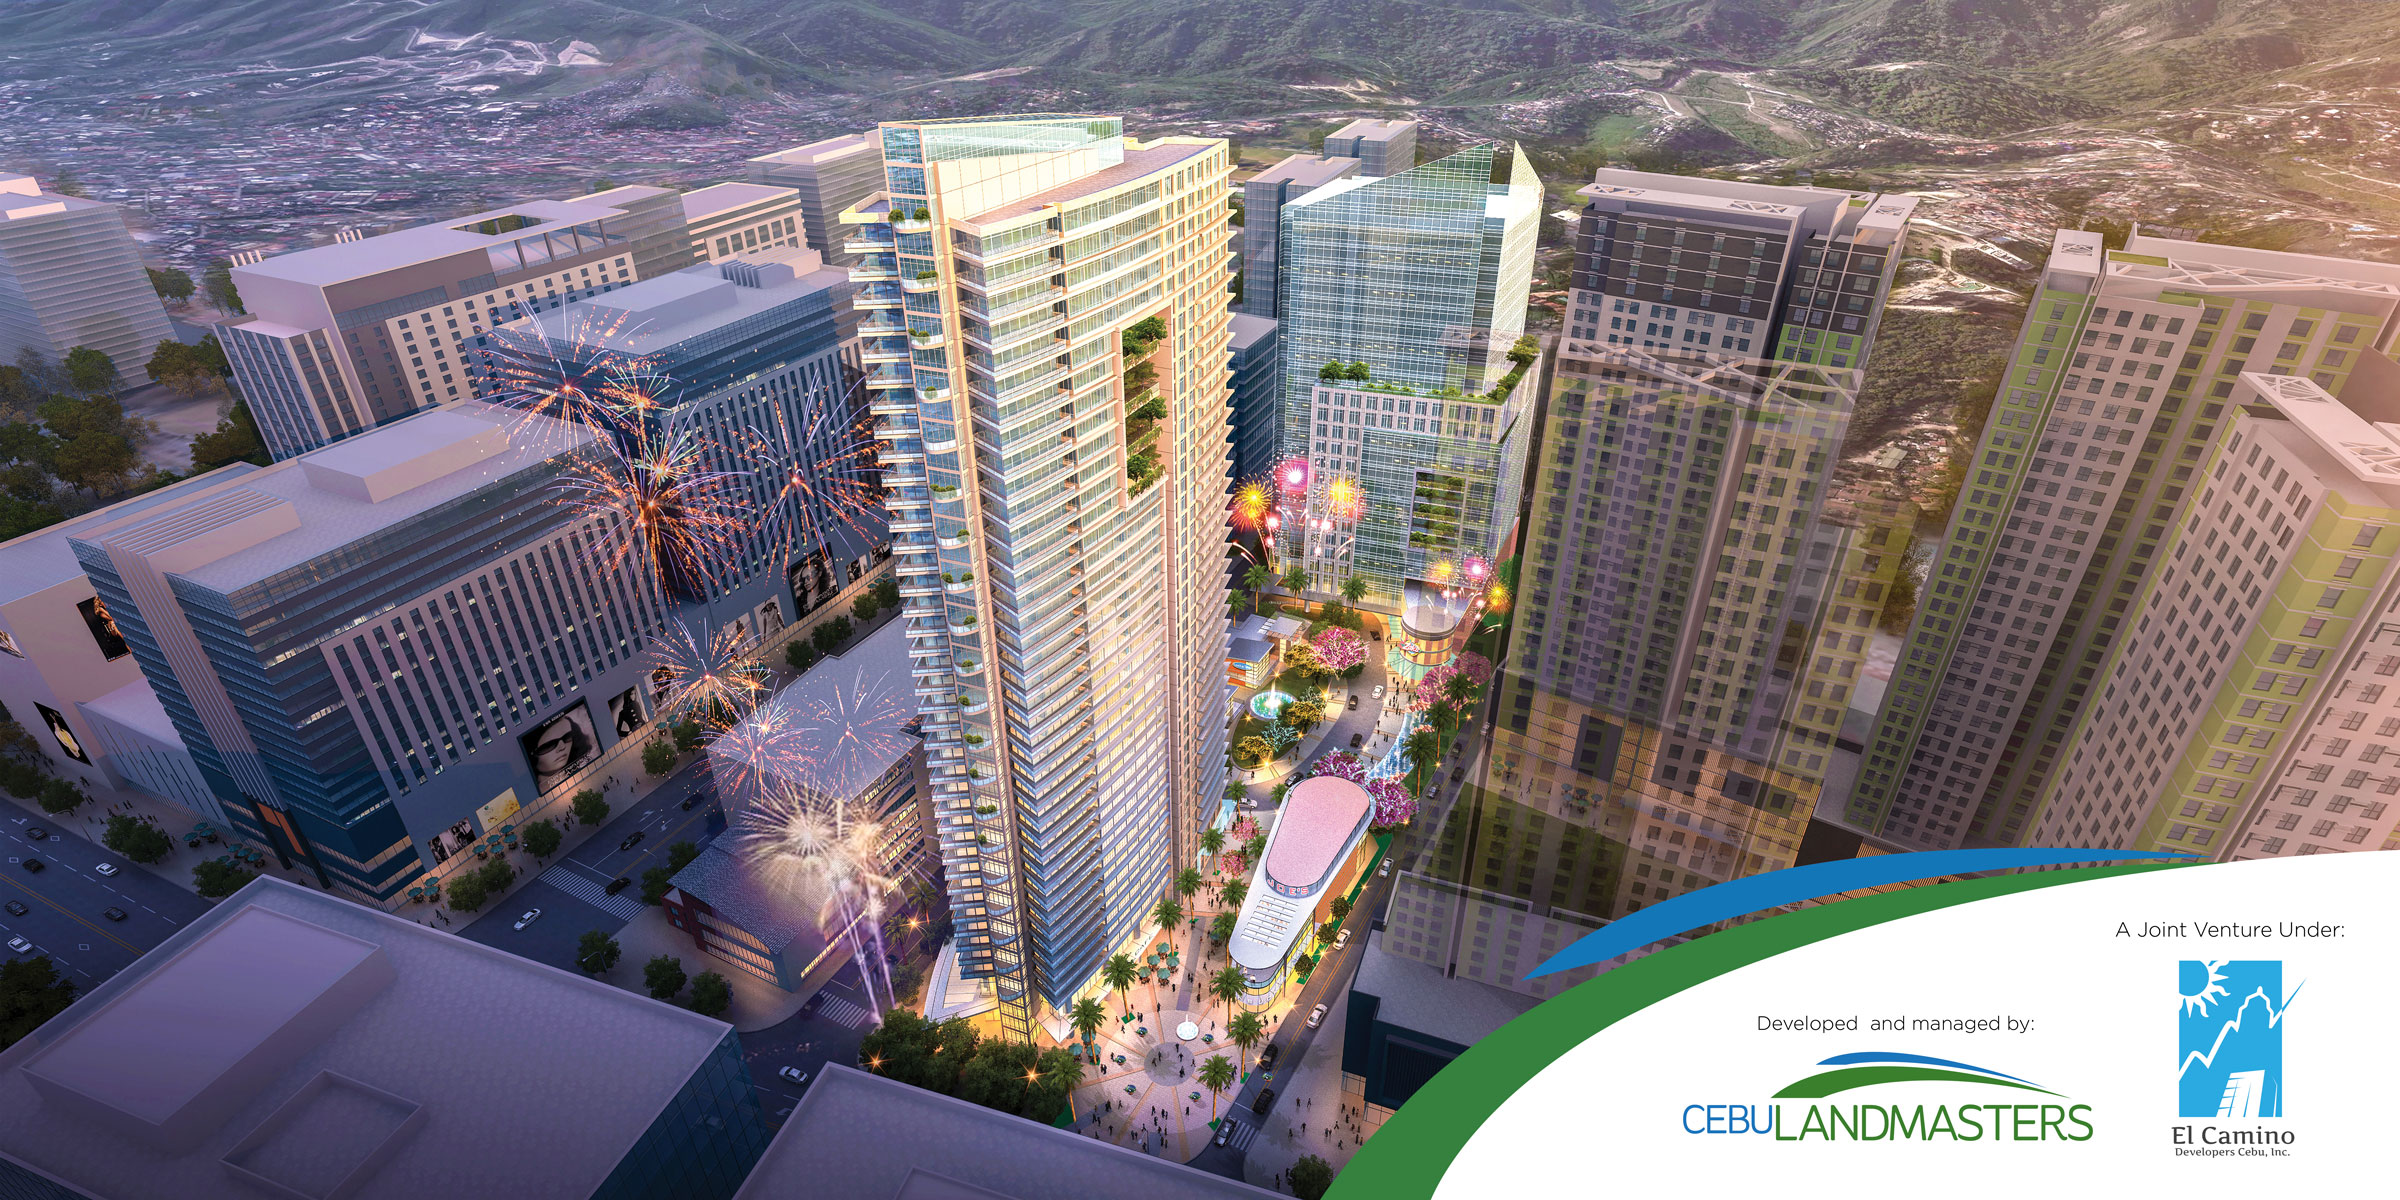 Top businessmen together with Cebu Landmasters will develop a mixed-use urban park and prime condo in Cebu IT Park